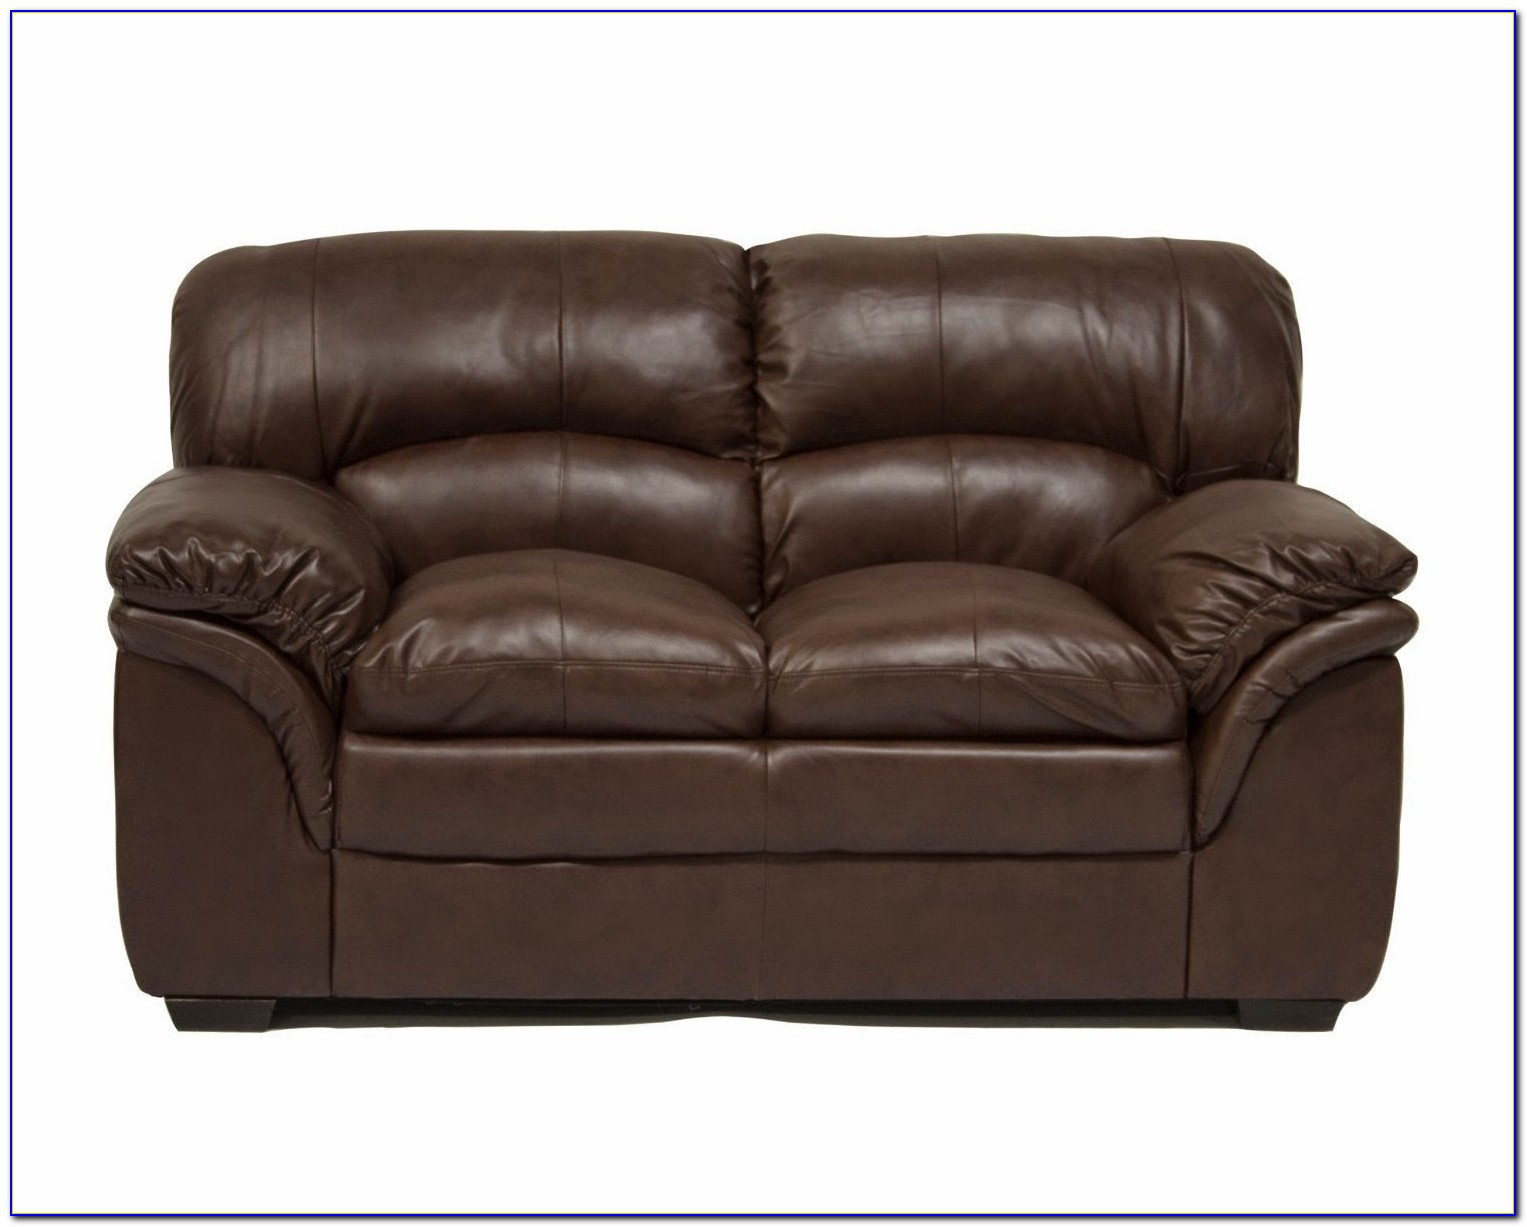 Fabric Slipcovers For Leather Sofa